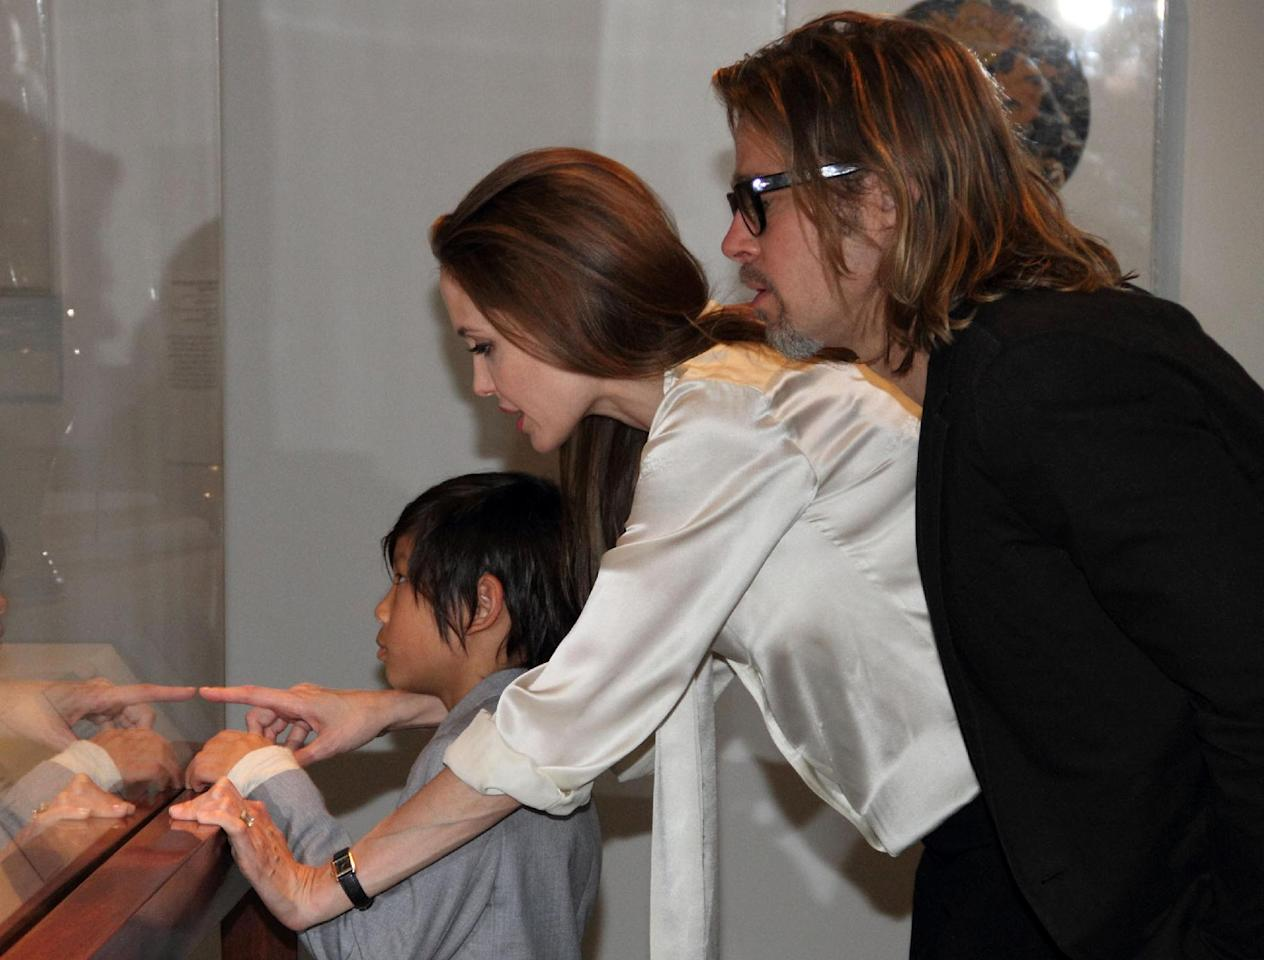 In this April 11, 2012 photo released by The Los Angeles County Museum of Art, actress Angelina Jolie, center, sports an engagement ring as she and Brad Pitt, and their son, Pax view works from the Chinese collection at the The Los Angeles County Museum of Art, in Los Angeles. Pitt's manager Cynthia Pett-Dante confirmed their engagement on Friday April 13, 2012. (AP Photo/LACMA, Howard Pasamanick via PR Newswire) EDITORIAL USE ONLY